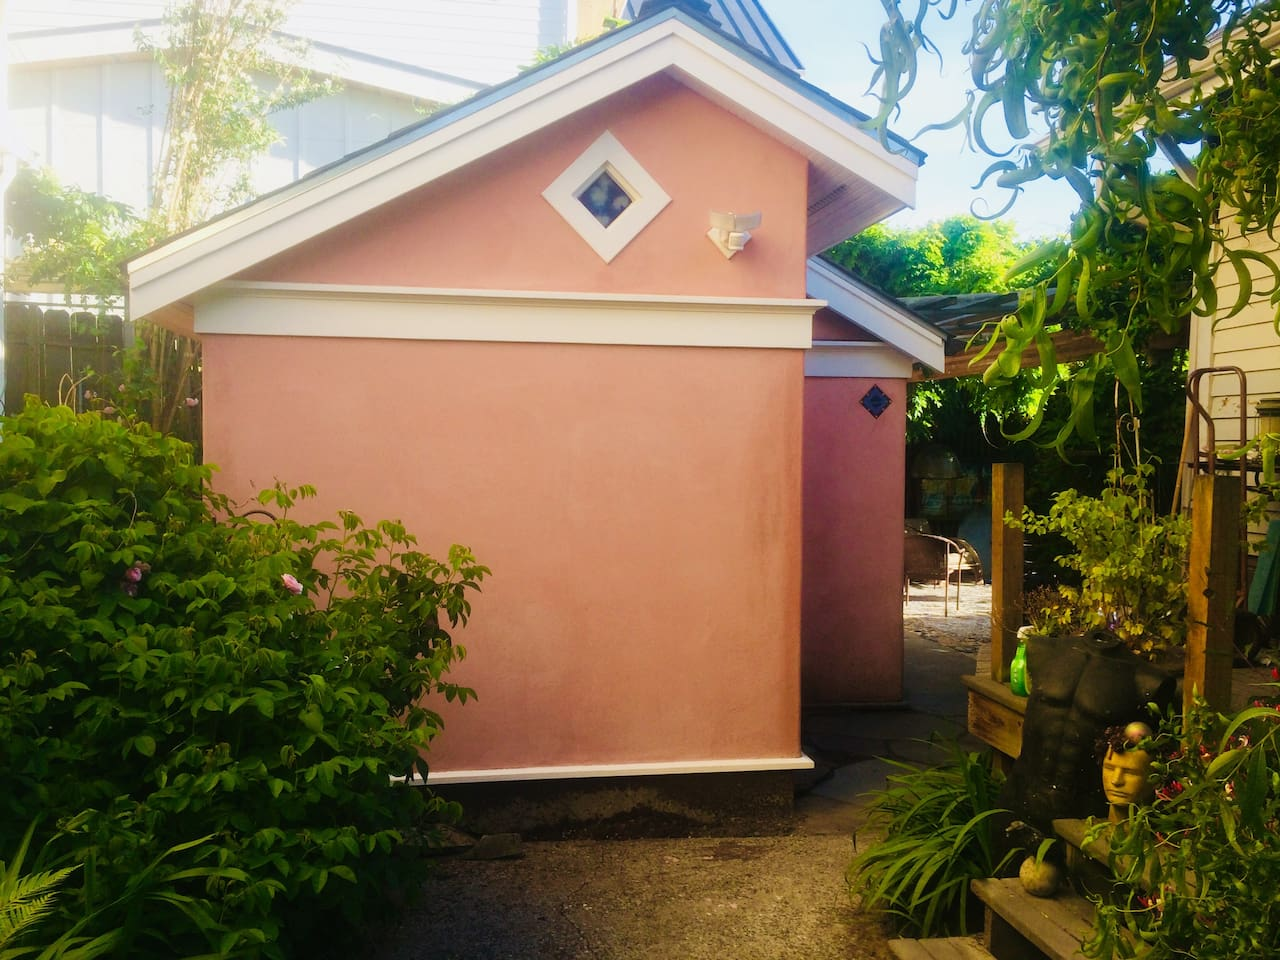 The Studio use to be a garage. It's situated at the end of the driveway with the entrance on the patio.